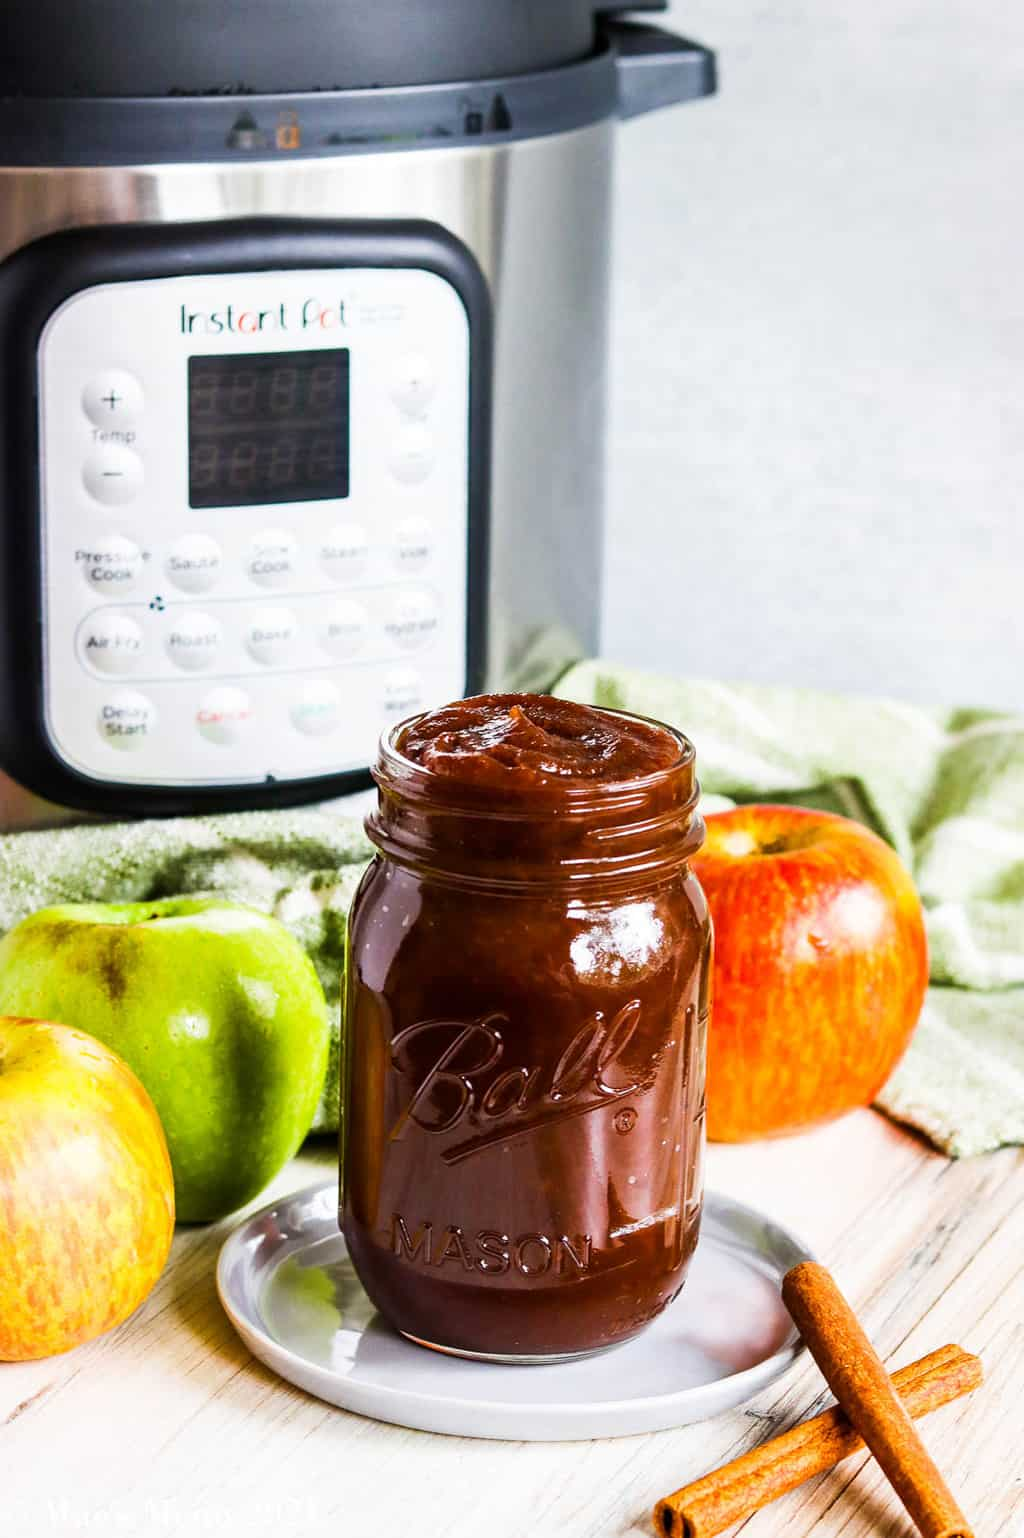 A ball jar of apple butter in a glass jar in front of an instant pot with apples and cinnamon